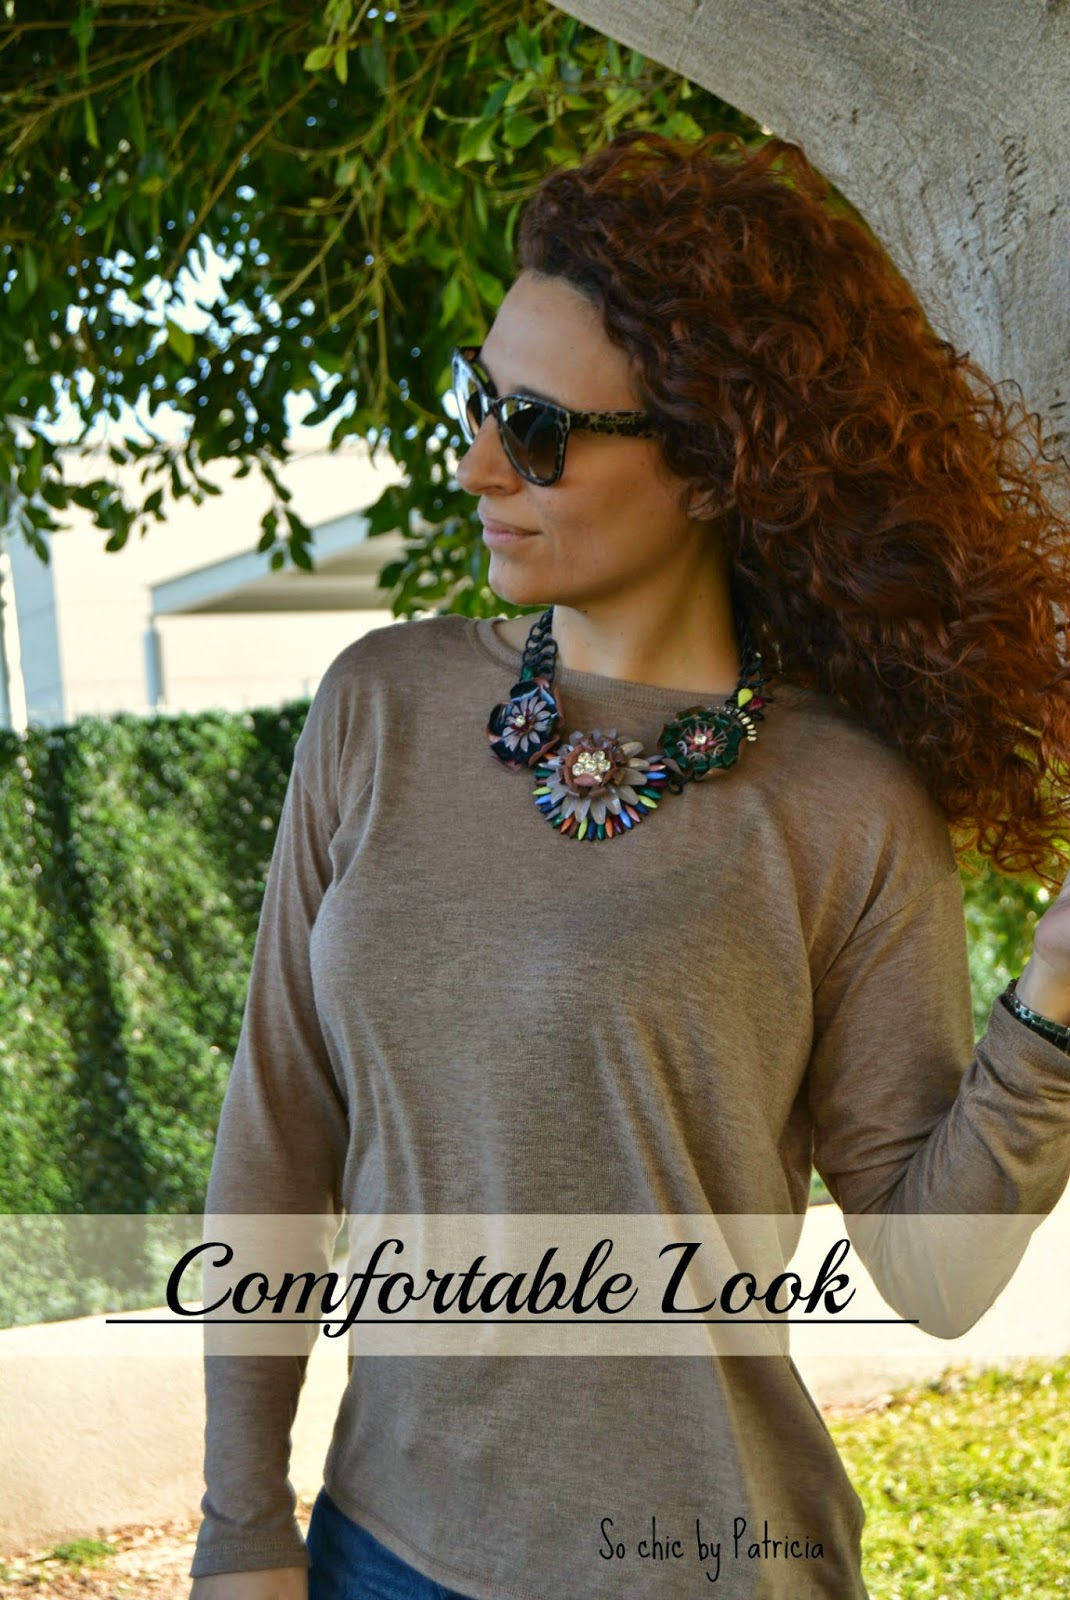 So chic by patricia_Comfortable Look